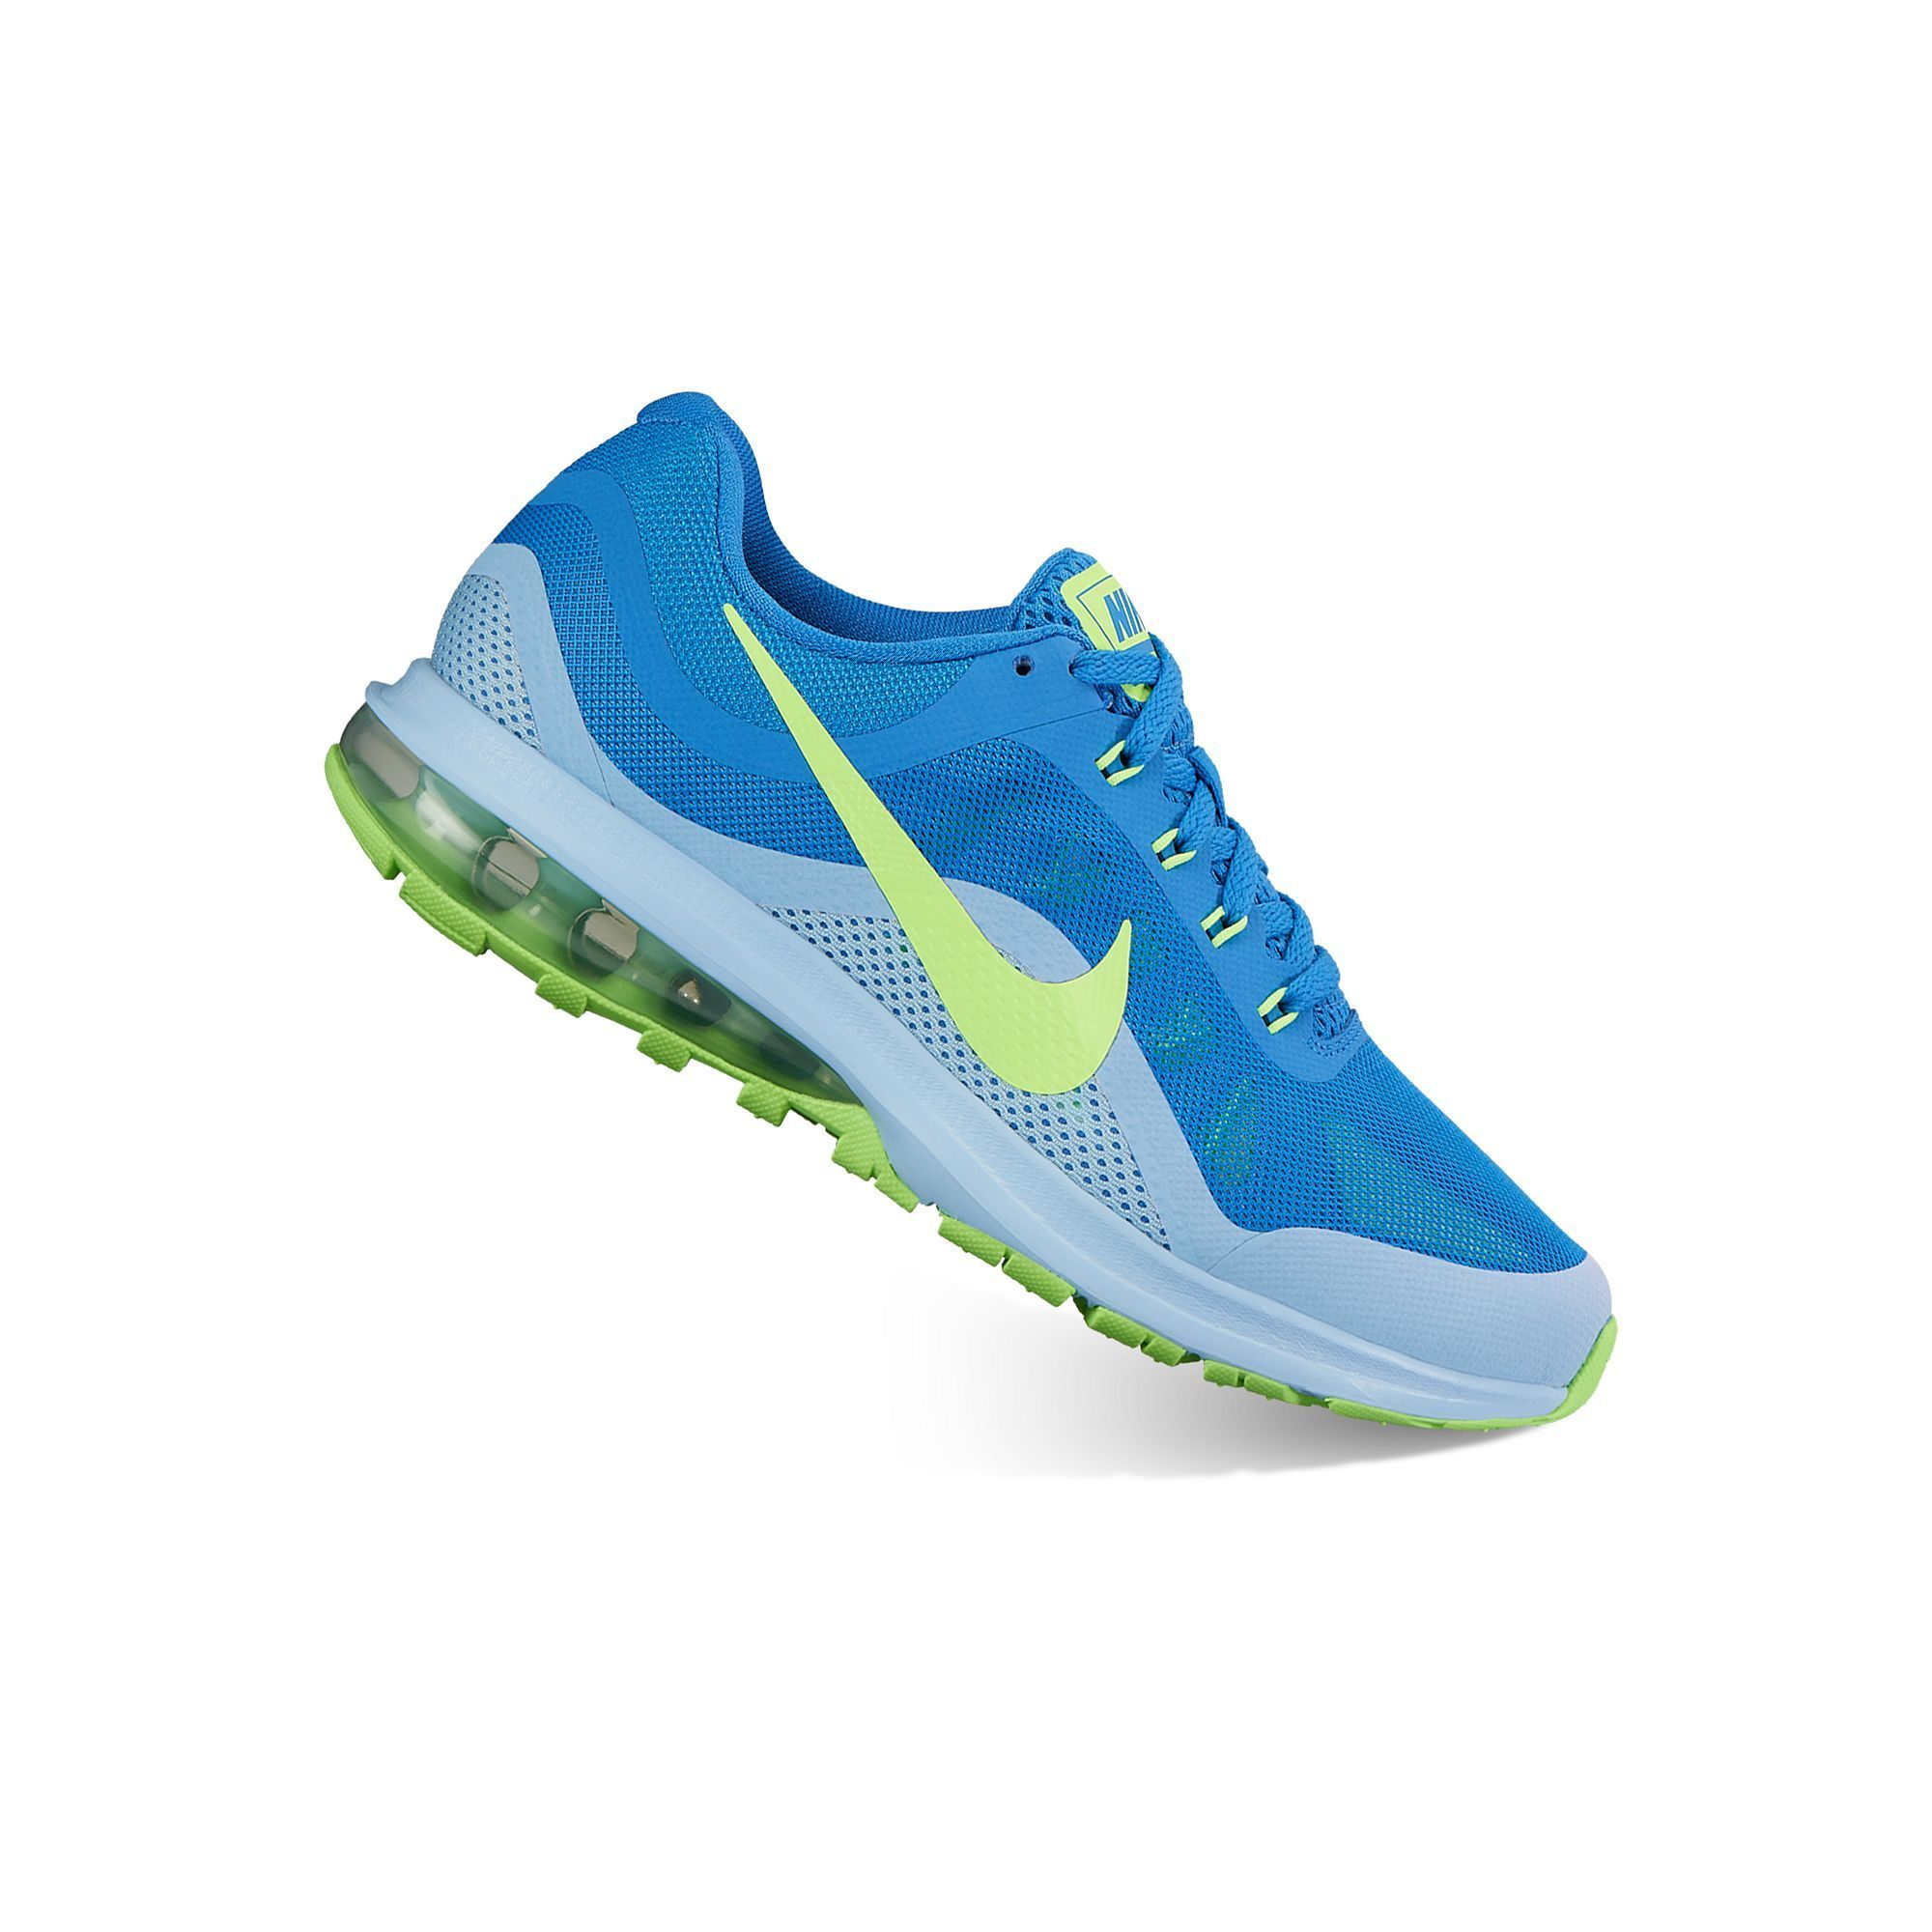 edfe7f4b61 Nike Air Max Dynasty 2 Women's Running Shoes, Size: 9, Blue